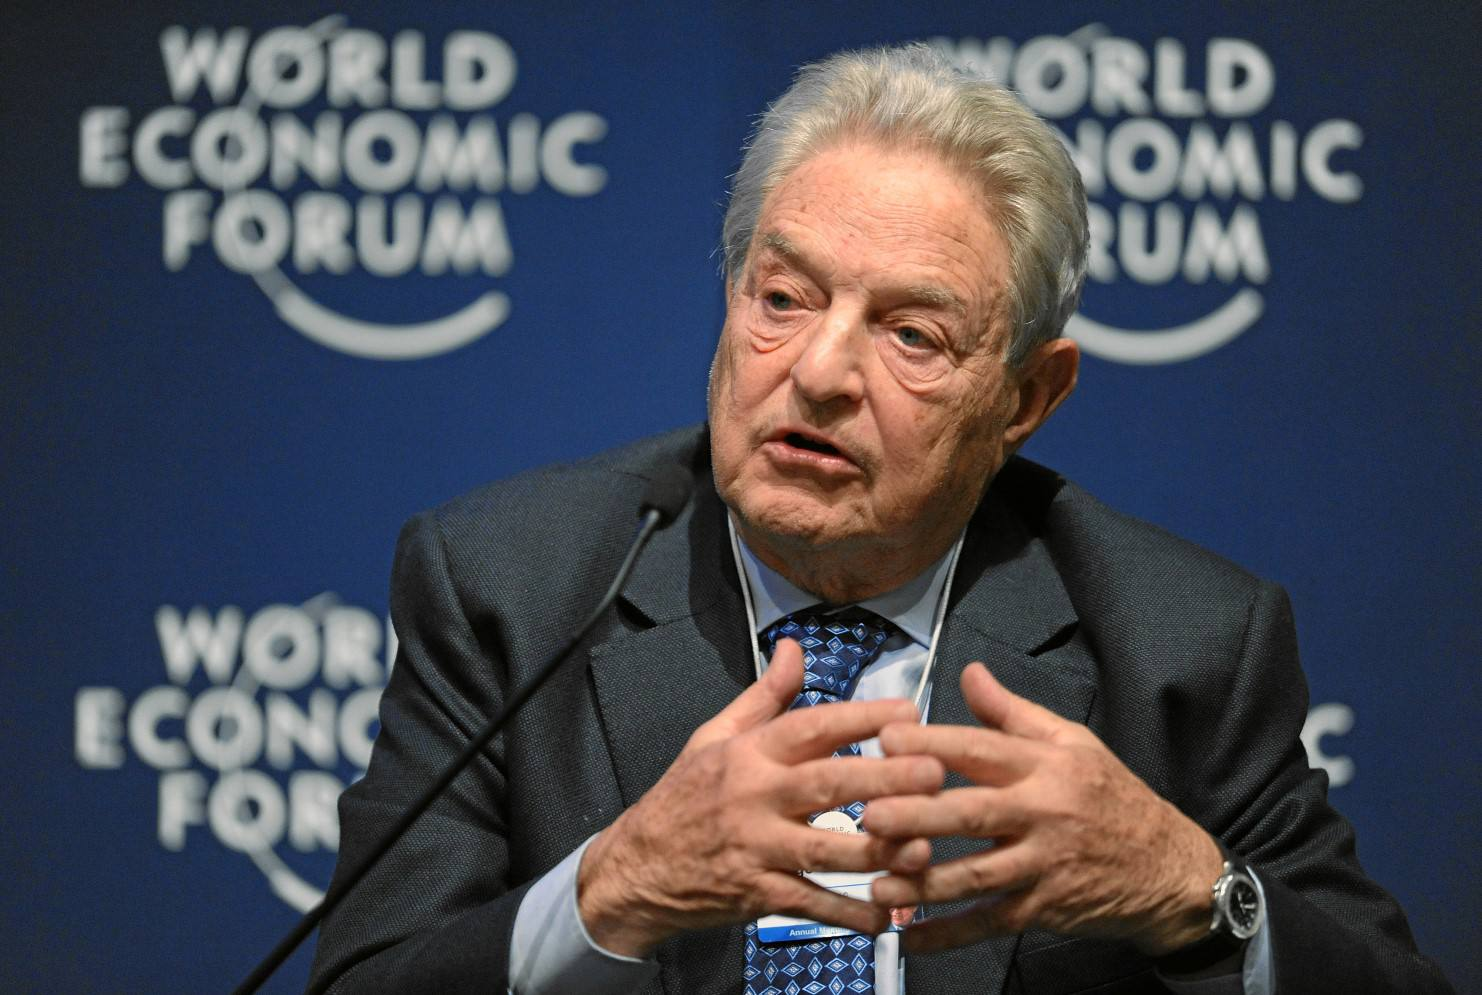 Used under a Creative Commons license at https://commons.wikimedia.org/wiki/File:George_Soros_-_World_Economic_Forum_Annual_Meeting_2011.jpg